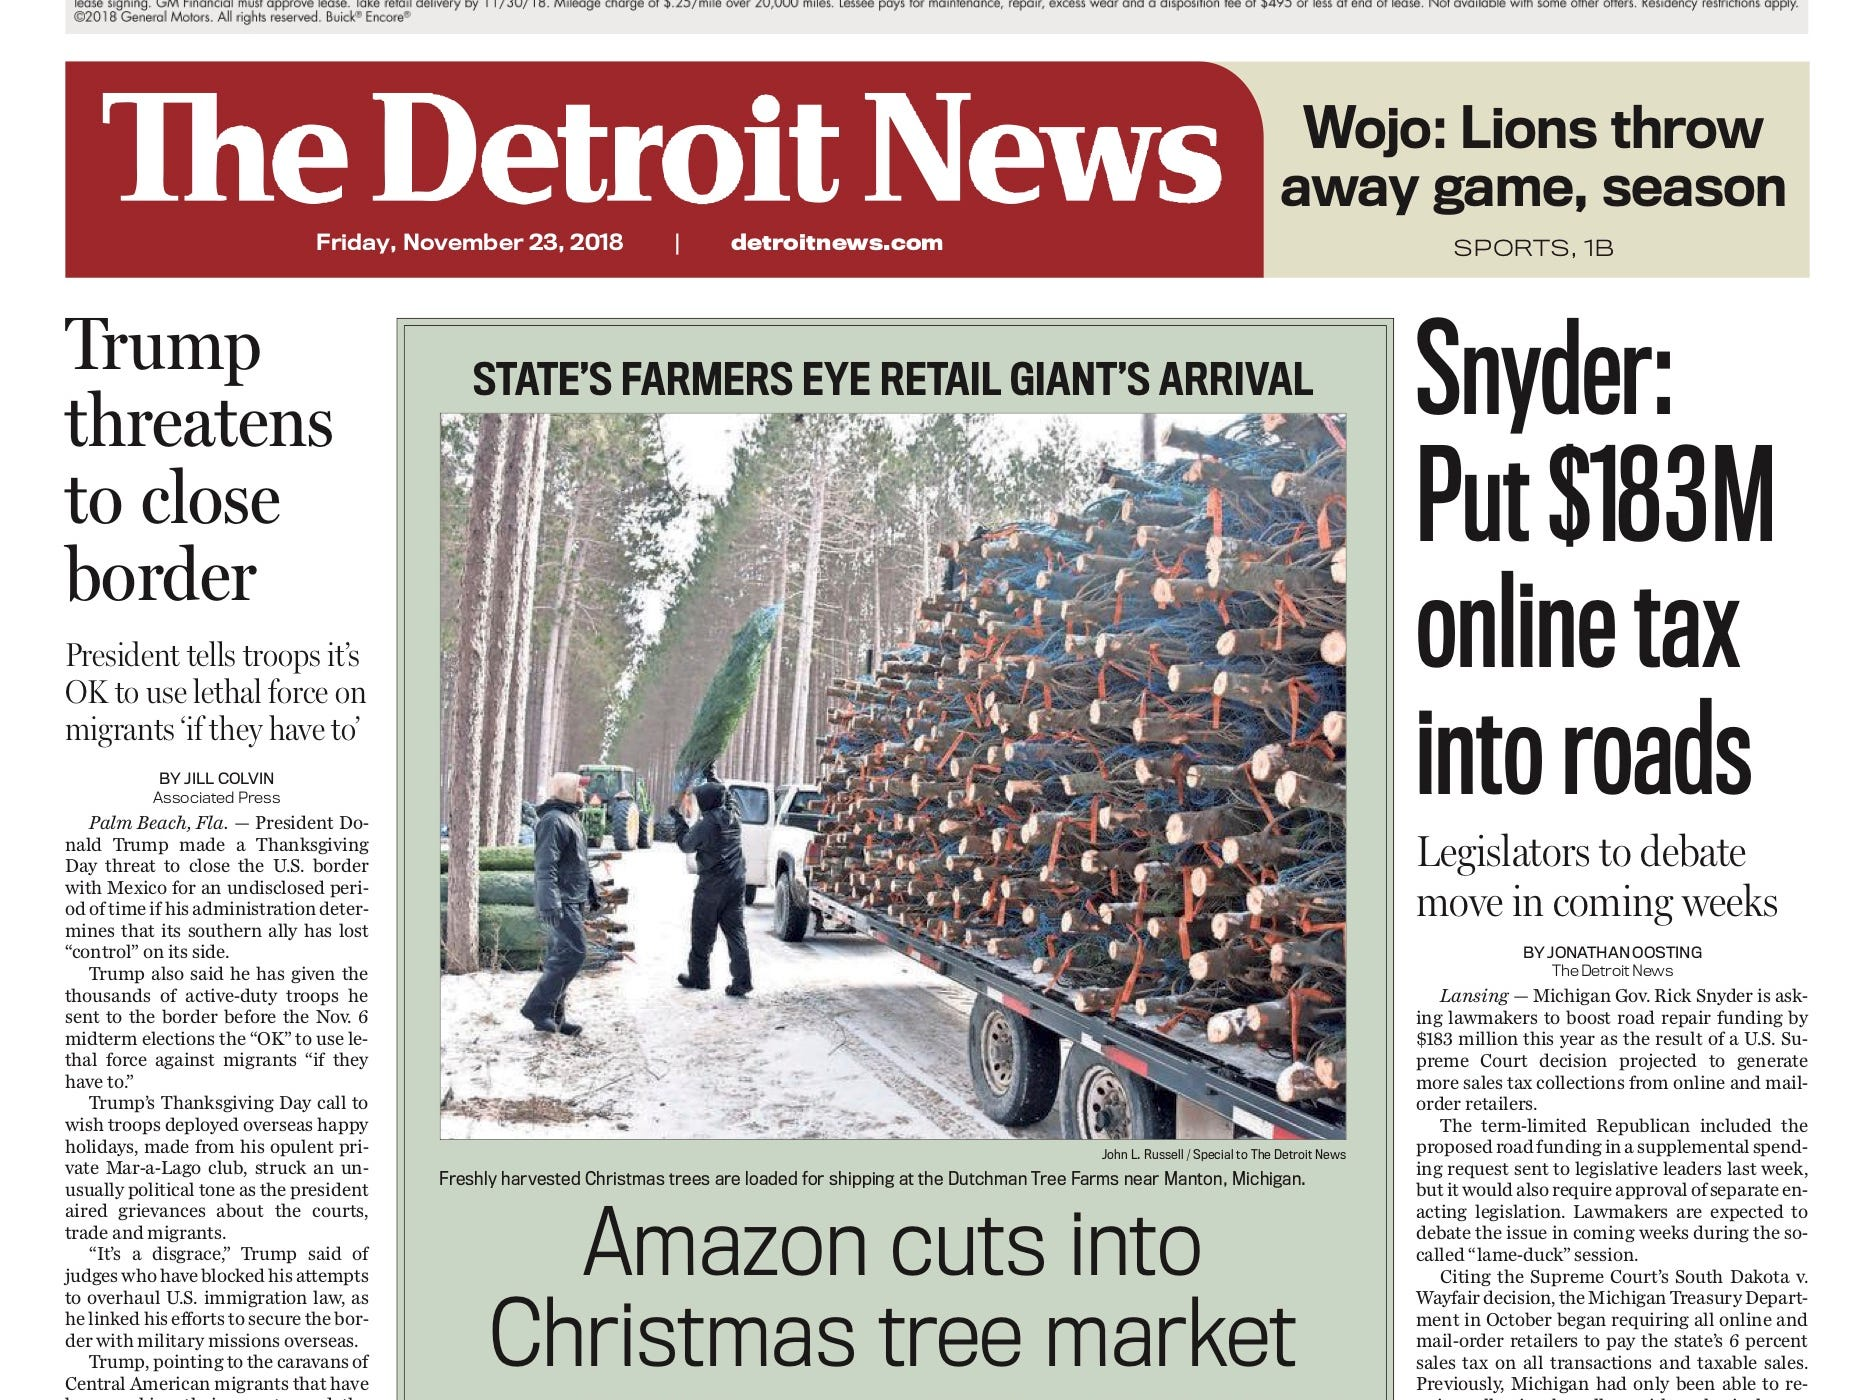 The front page of the Detroit News on November 23, 2018.